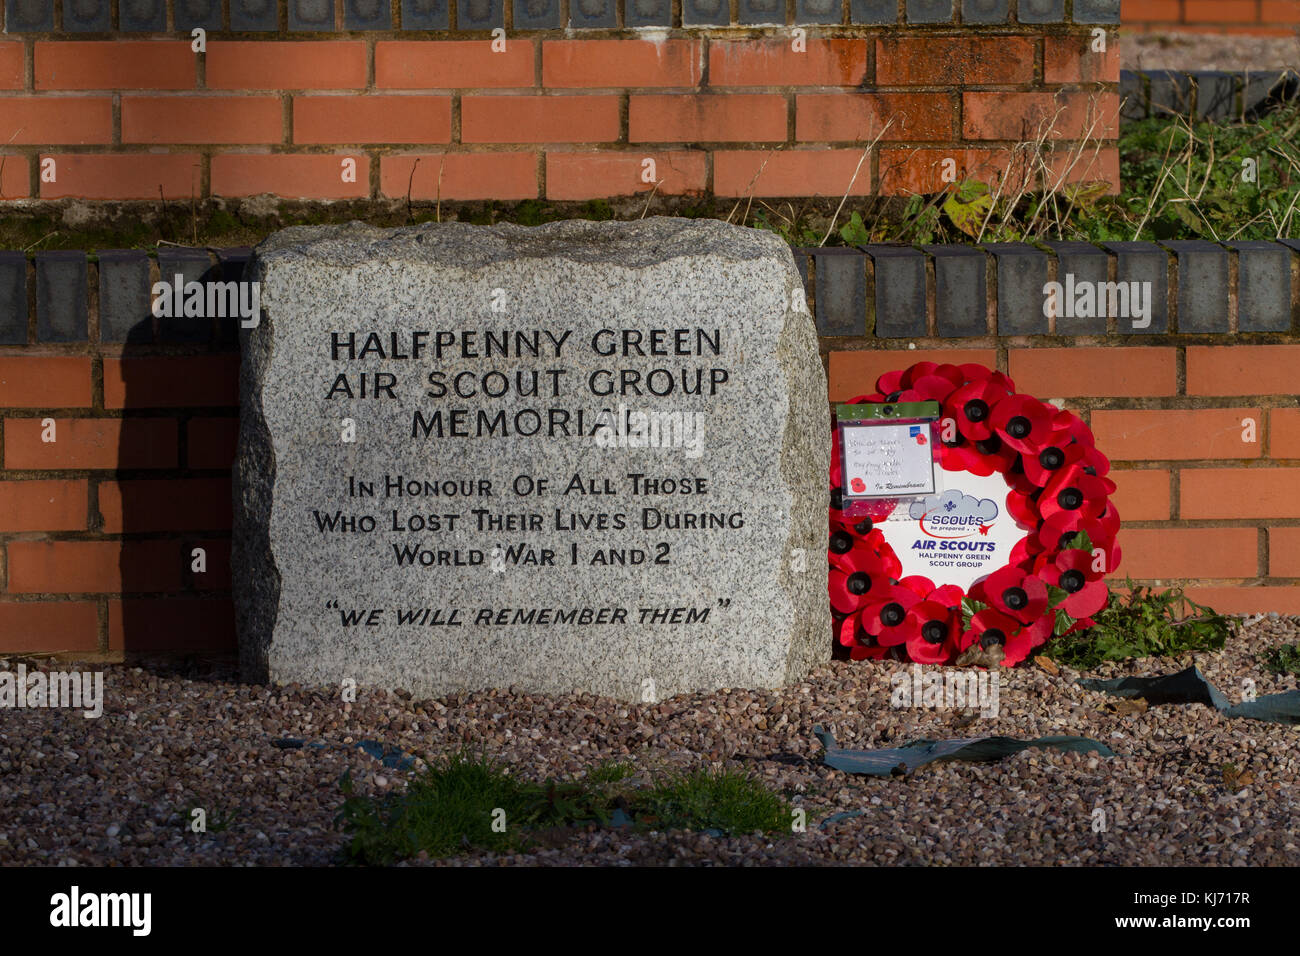 Halfpenny Green Air Scout Memorial with poppy wreath. Wolverhampton  Halfpenny Green Airport. Staffordshire. England. - Stock Image